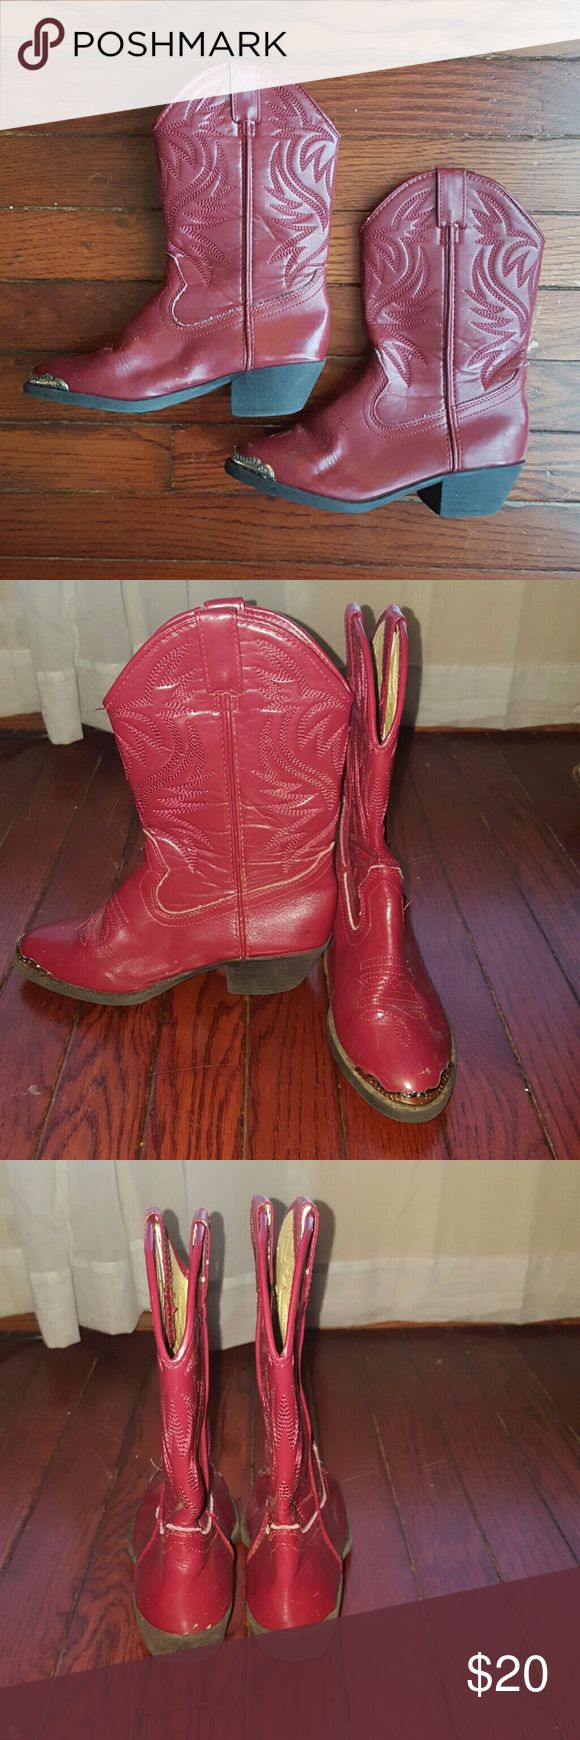 Size 6 Red Smoky Mountain Steel Toe Cowboy Boots Awesome paie of red Smoky Mountain steel toe cowboy boots. Some normal light signs of wear and sturdy soles. Smoky Mountain Shoes